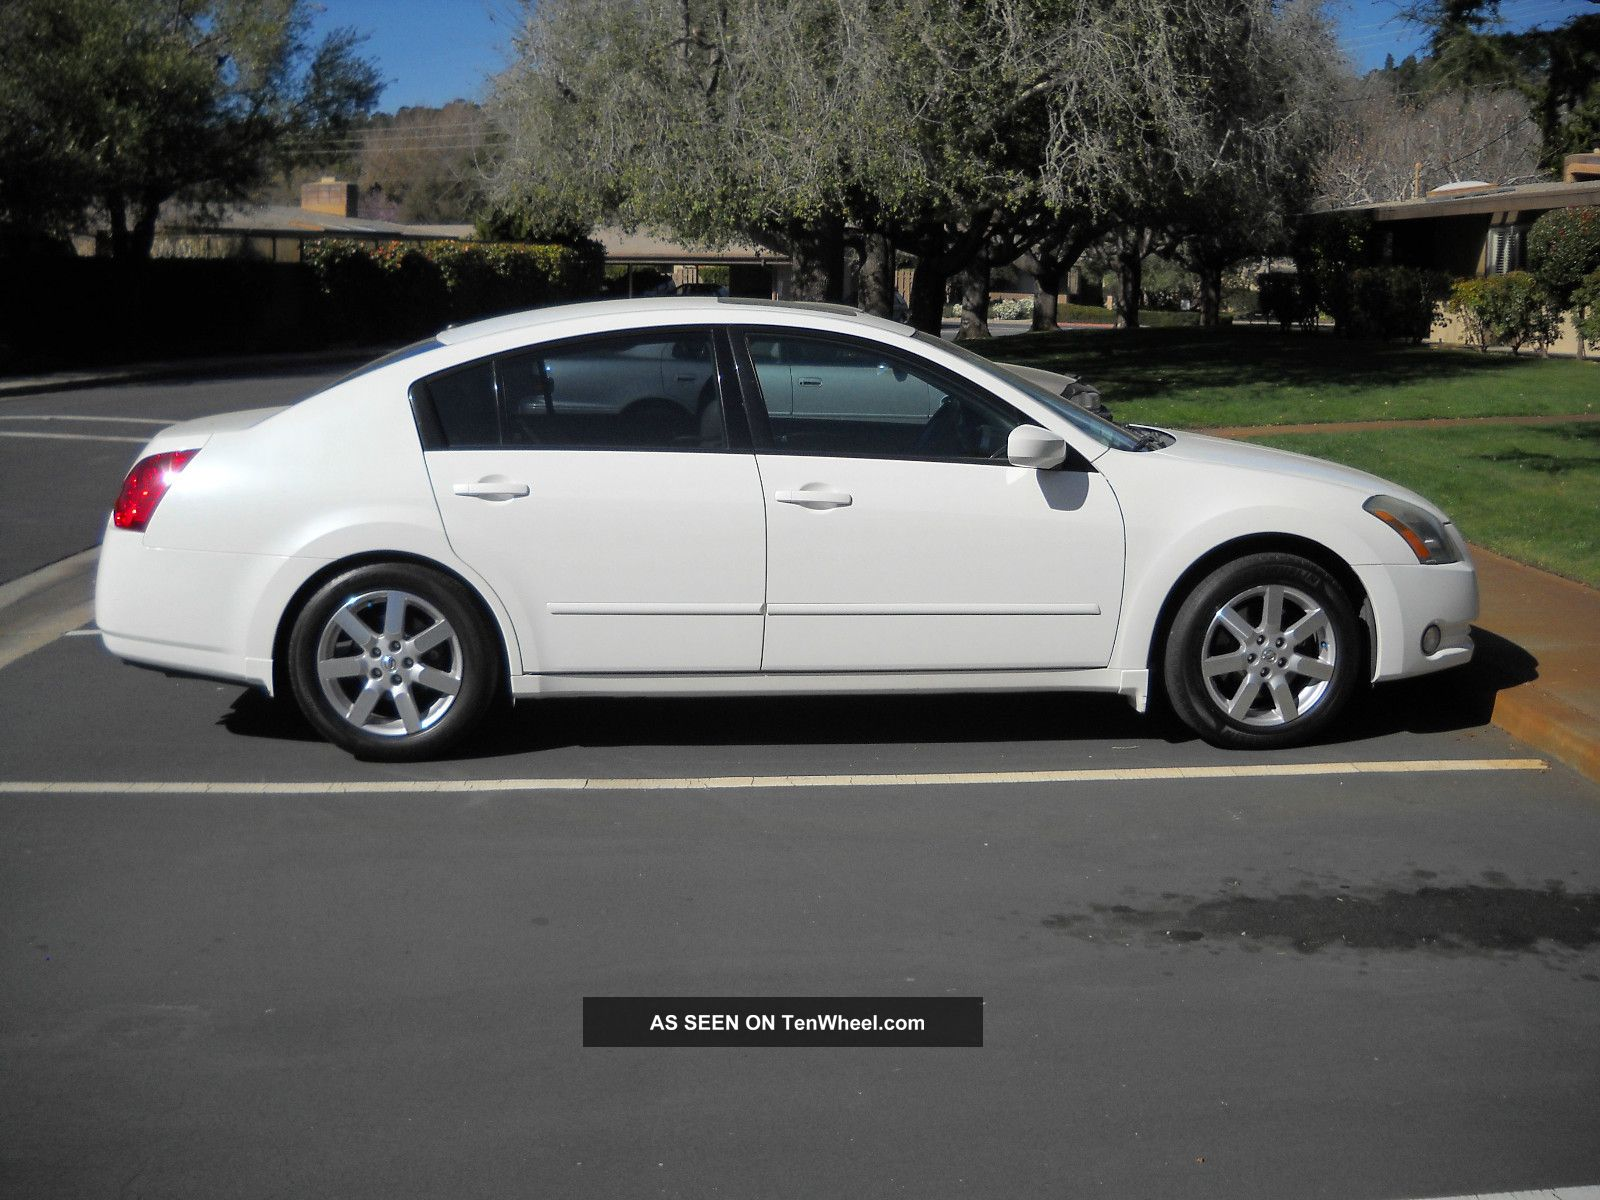 2013 Nissan Maxima Tinted Windows